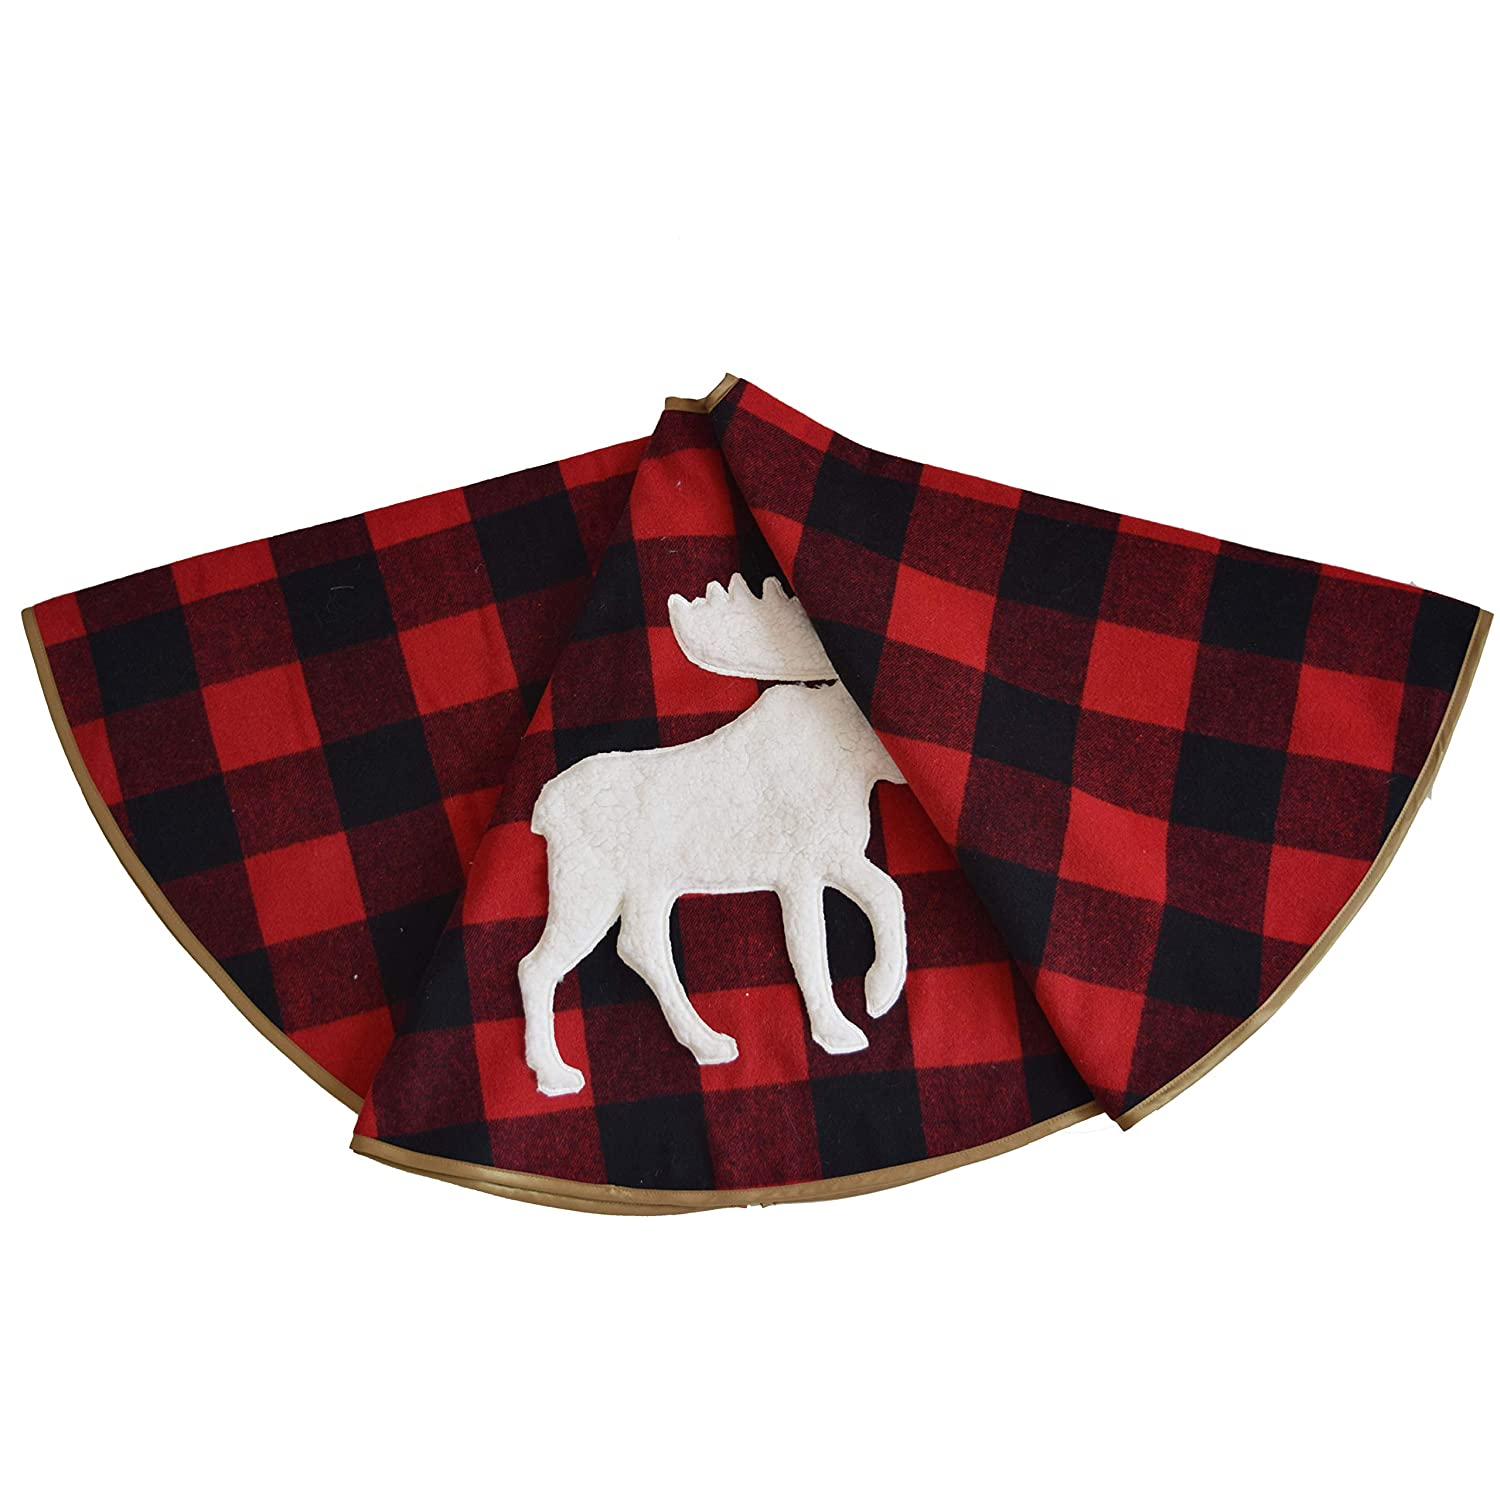 Gireshome Buffalo Check Plaid with White Sherpa Reindeer Applique Embroidery, Reverse to Ploar Fleece Christmas Tree Skirt -48inch